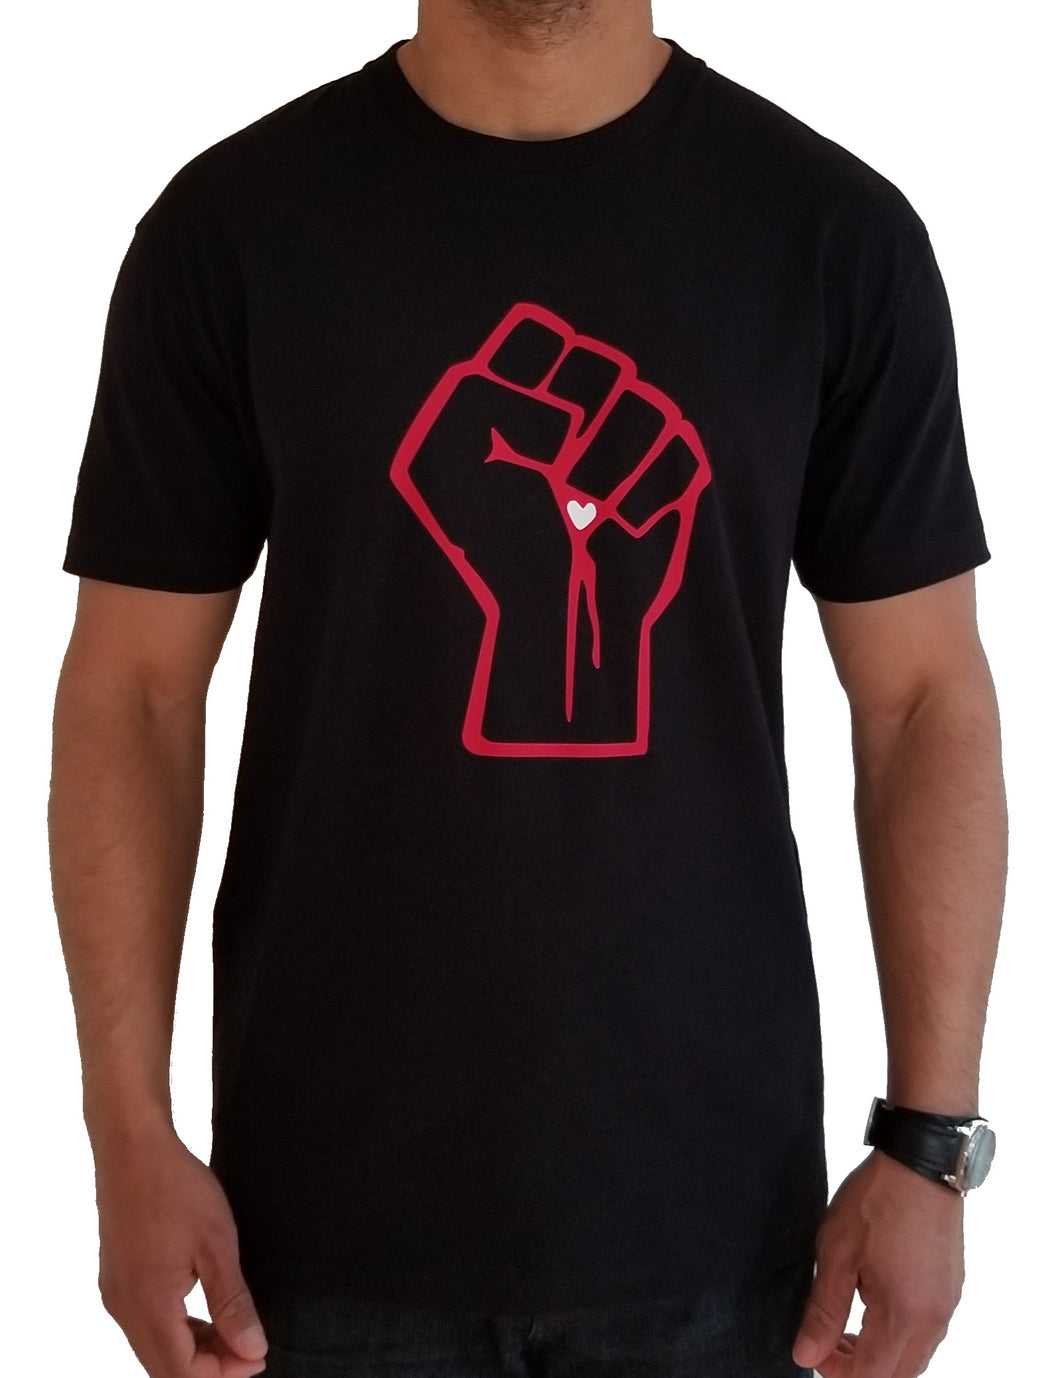 Front view of clenched fist in red outline with white heart.